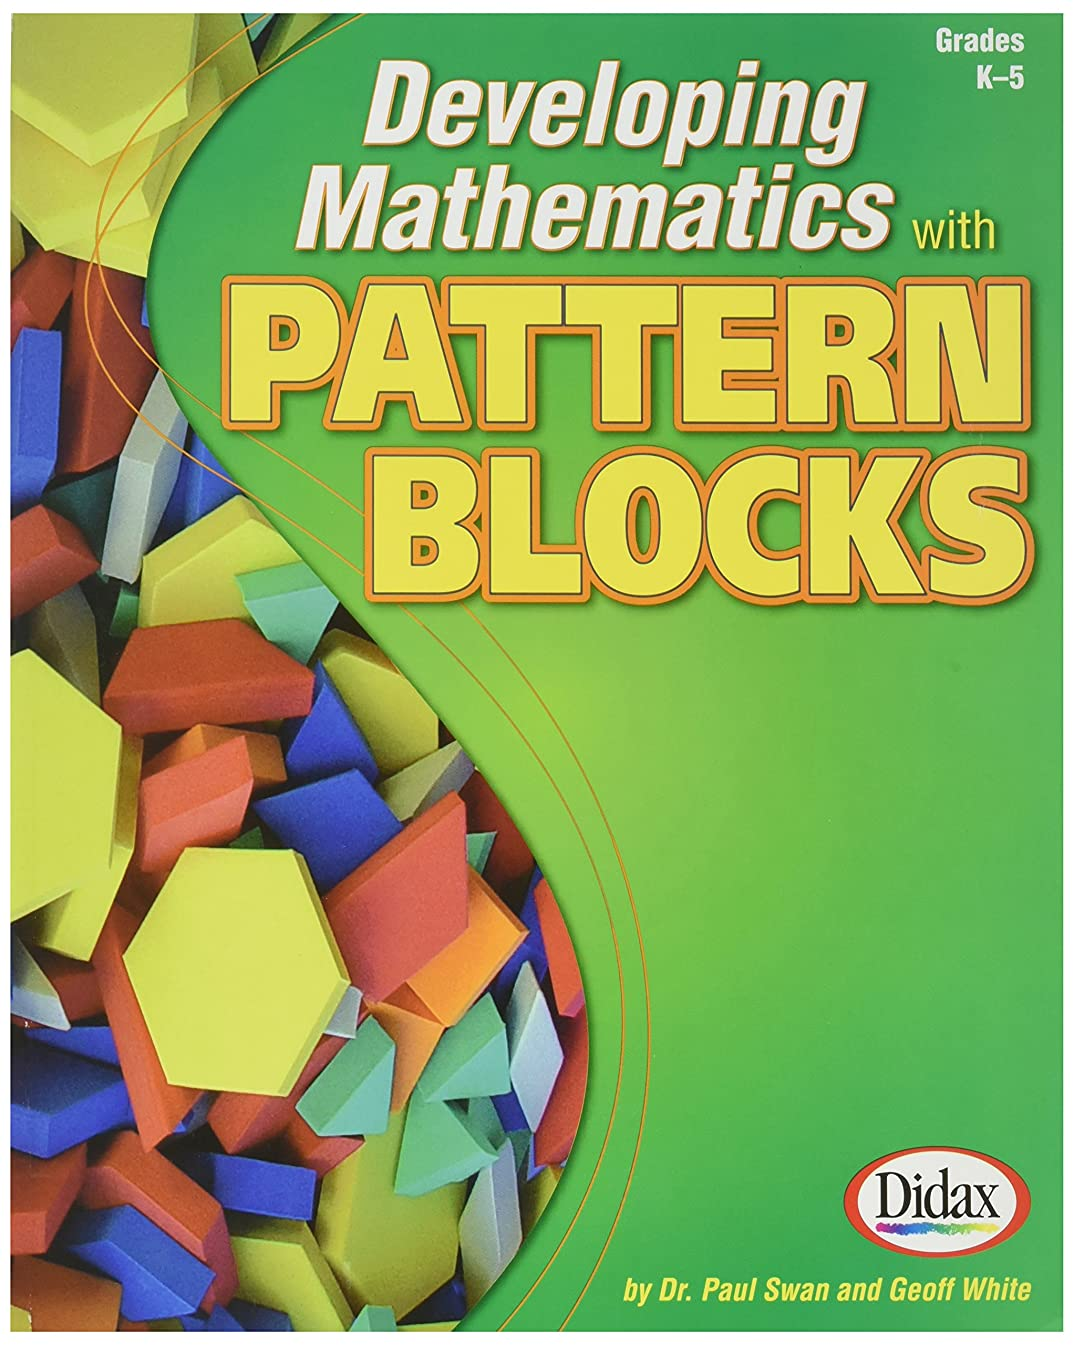 Didax Educational Resources Developing Math with Pattern Blocks